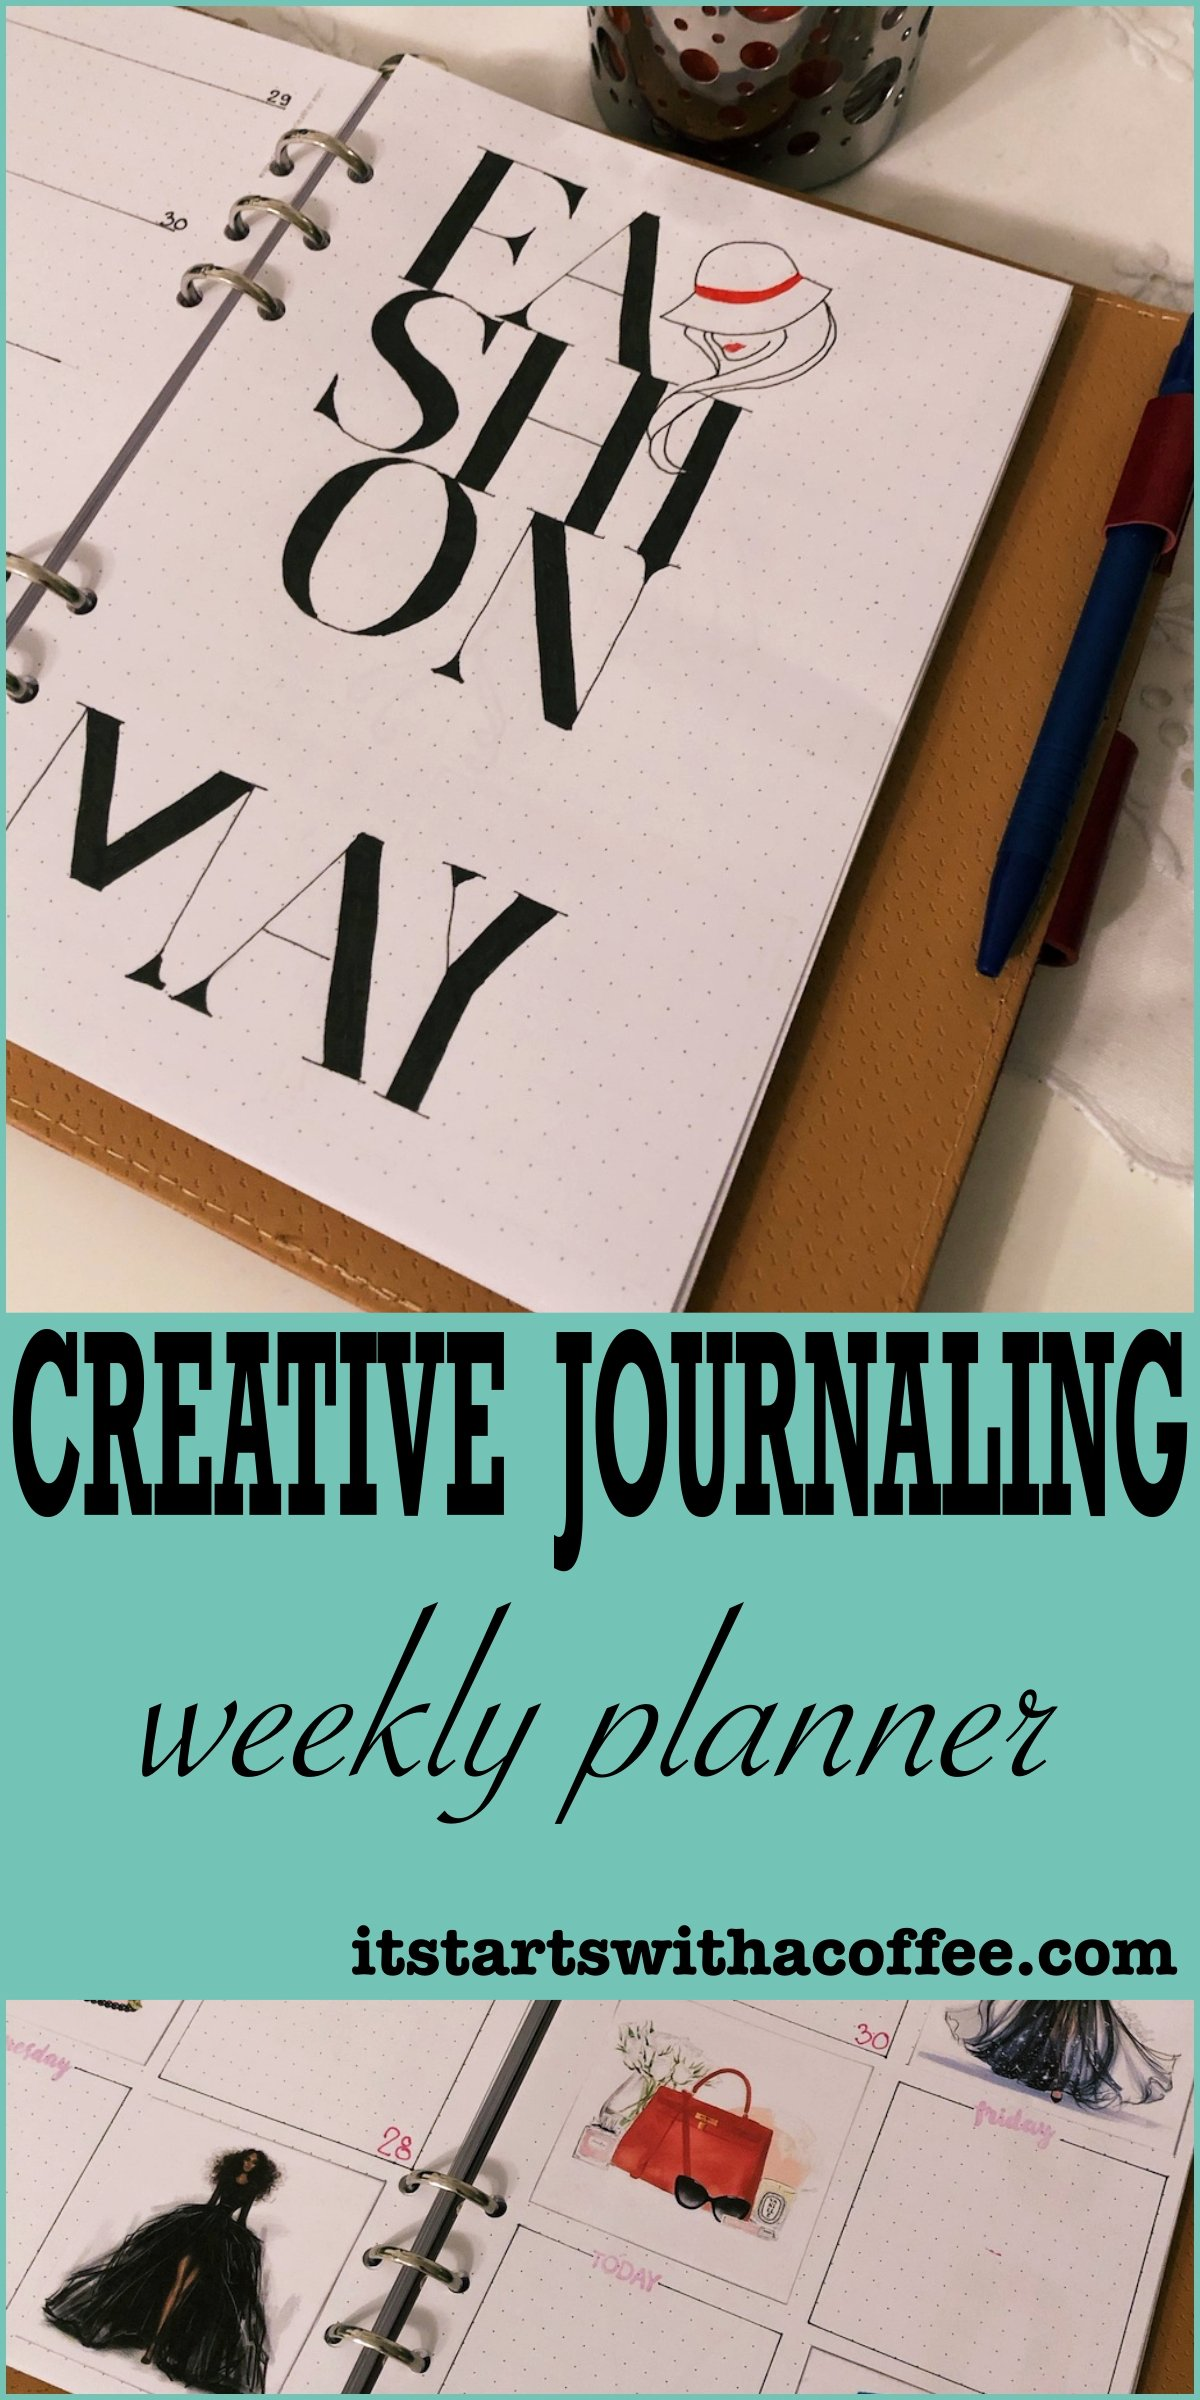 Creative journaling May 2019 - itstartswithacoffee.com #creativejournaling #planner #coverpage #2019 #2019May #May